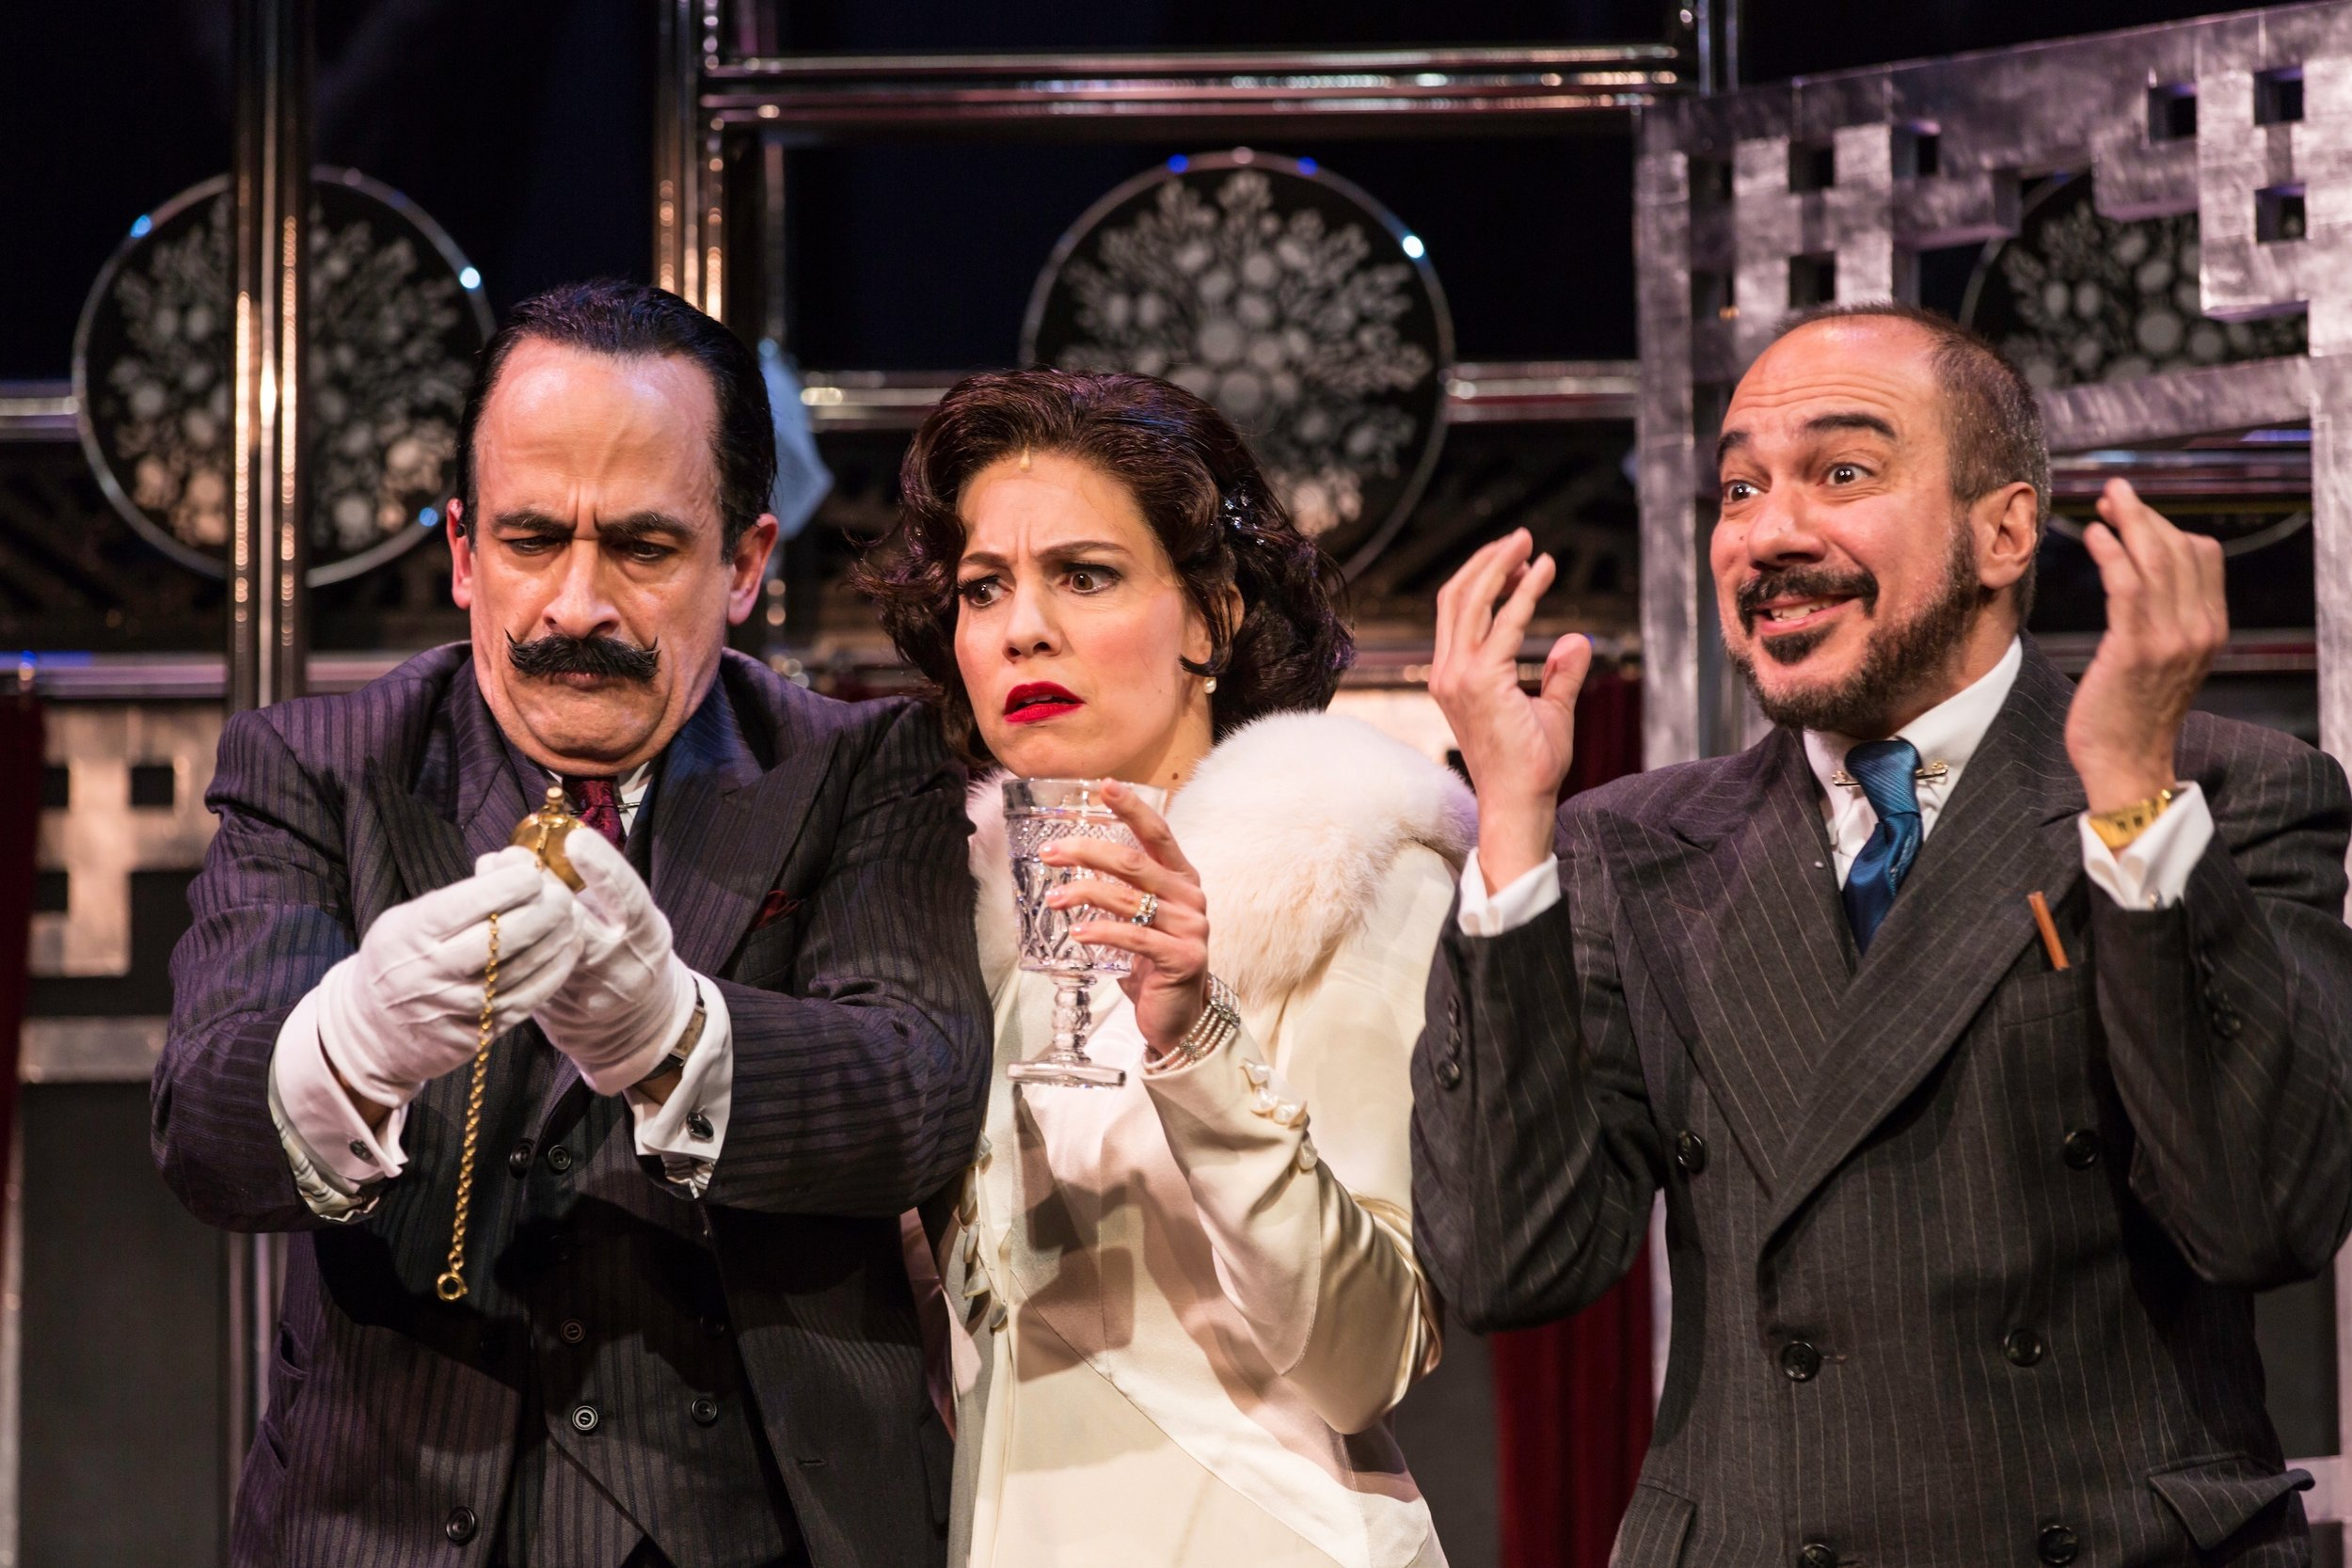 Hercule Poirot (David Pittu), Countess Andrenyi (Leigh Ann Larkin), M. Bouc (Evan Zes)